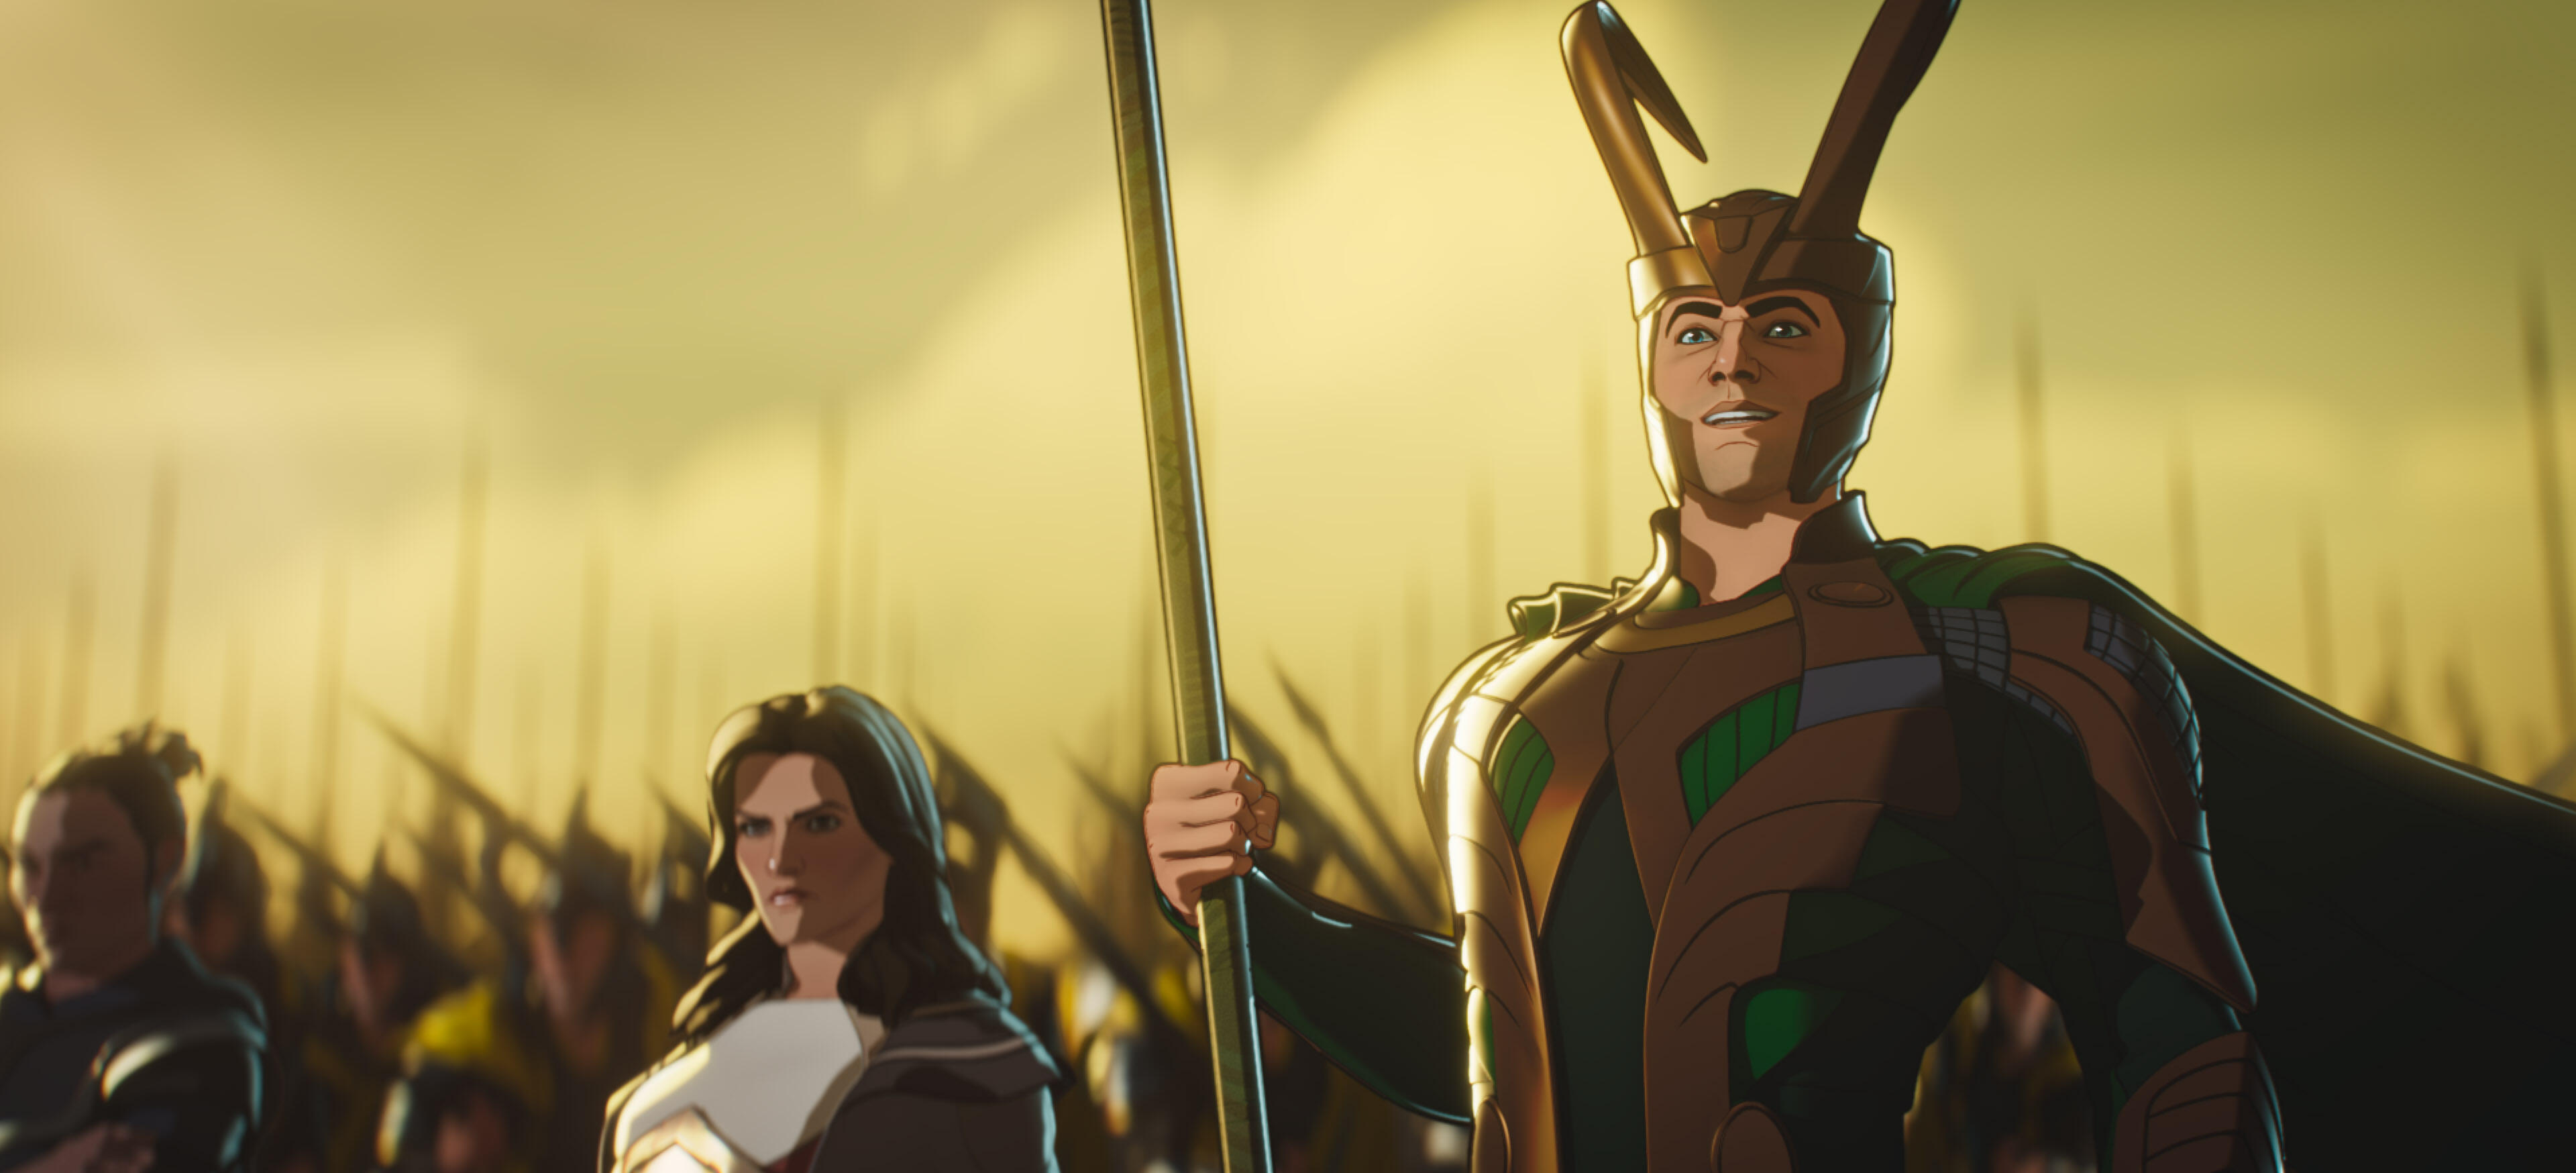 Loki and Sif in Marvel's What If...?